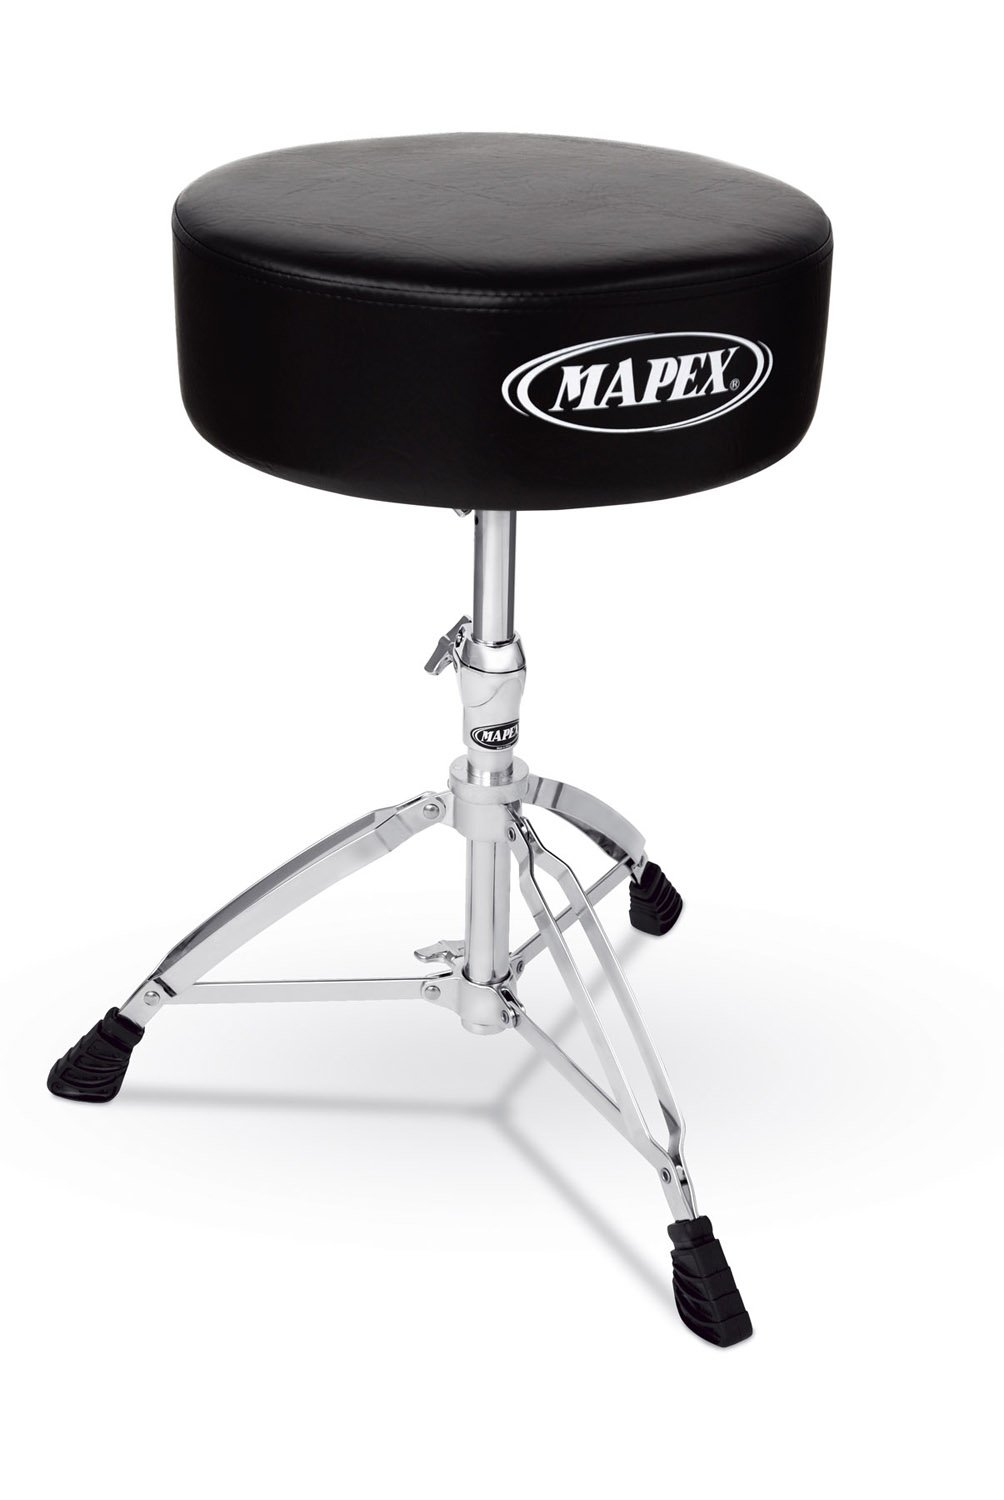 Mapex Double Brace Thick Cushion - Heavy Duty Drum Throne Mapex USA T570A